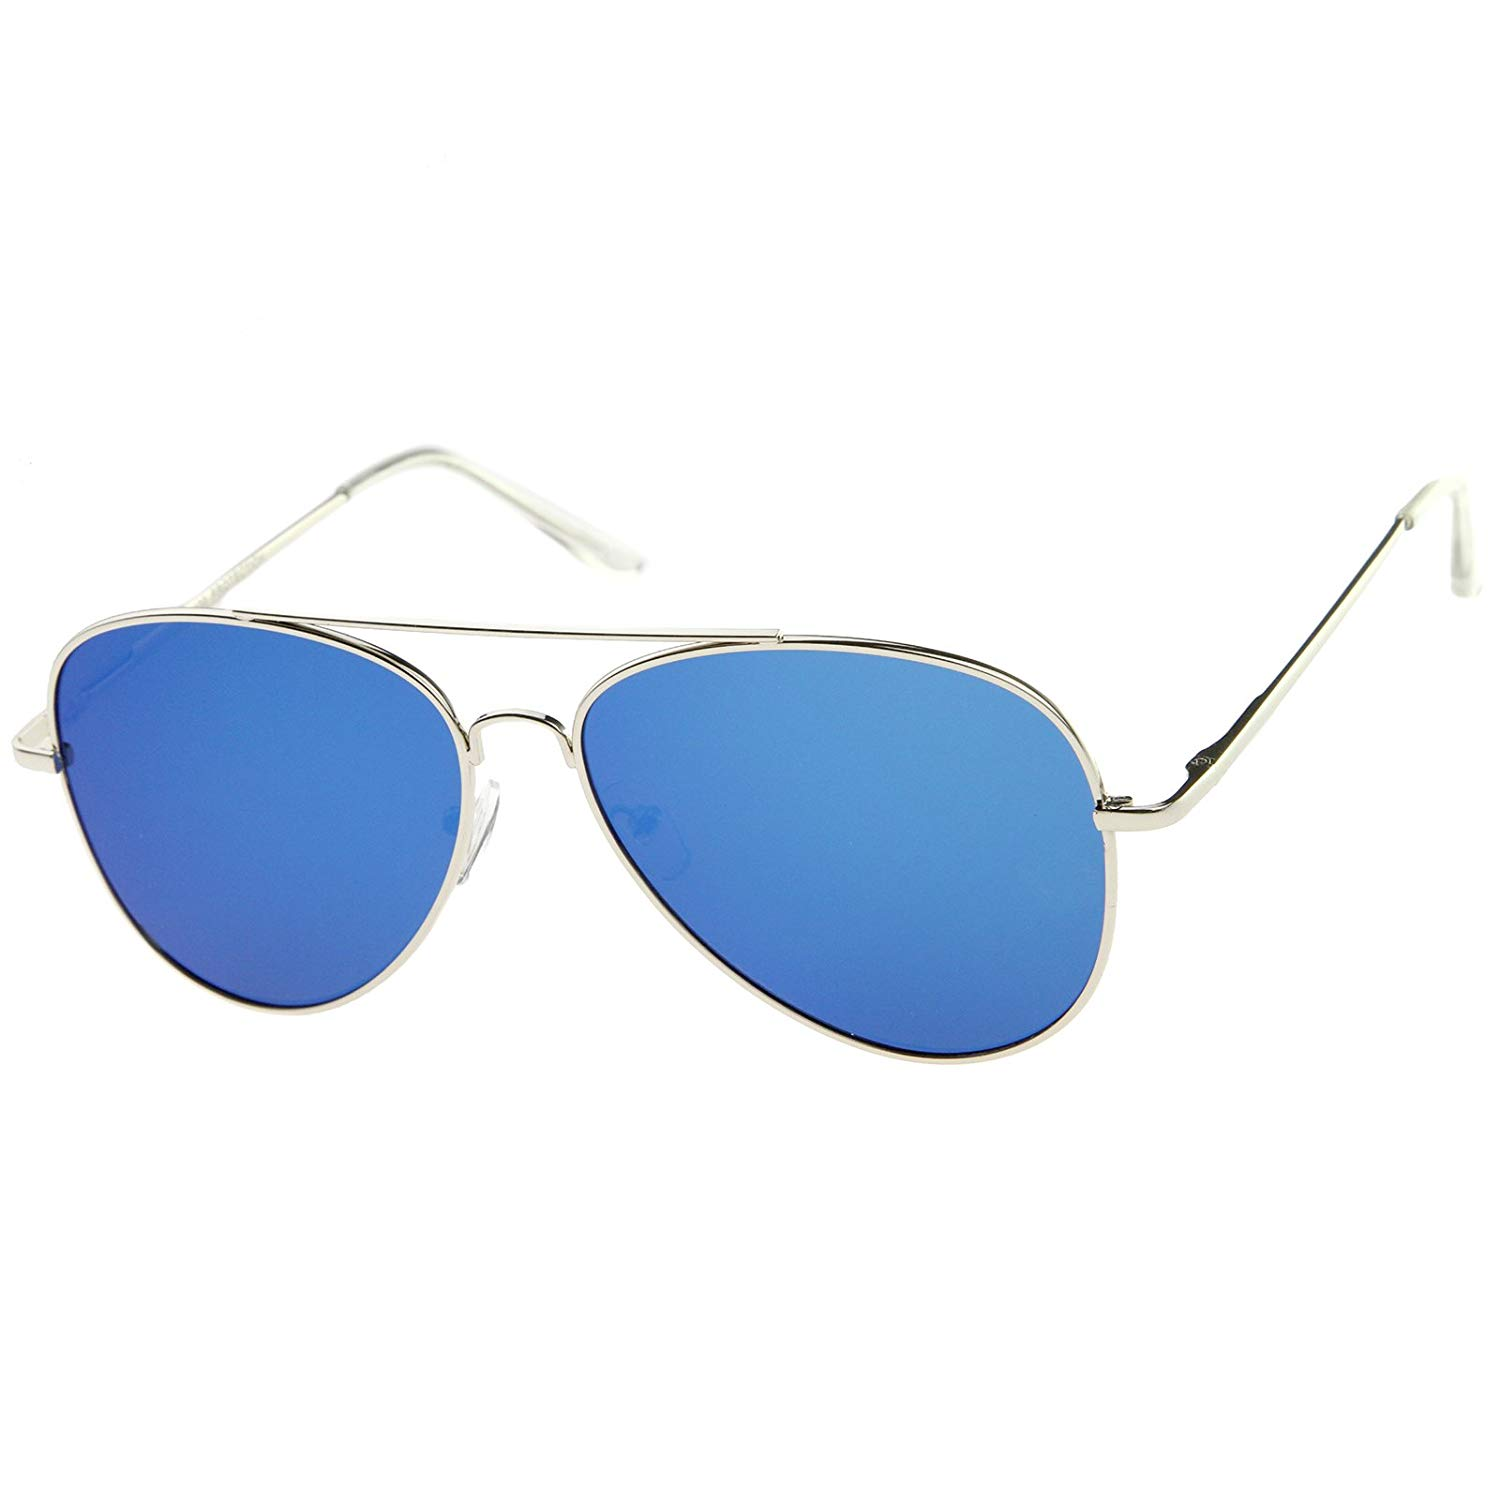 23eb01459 Get Quotations · zeroUV - Large Full Metal Color Mirror Teardrop Flat Lens Aviator  Sunglasses 60mm